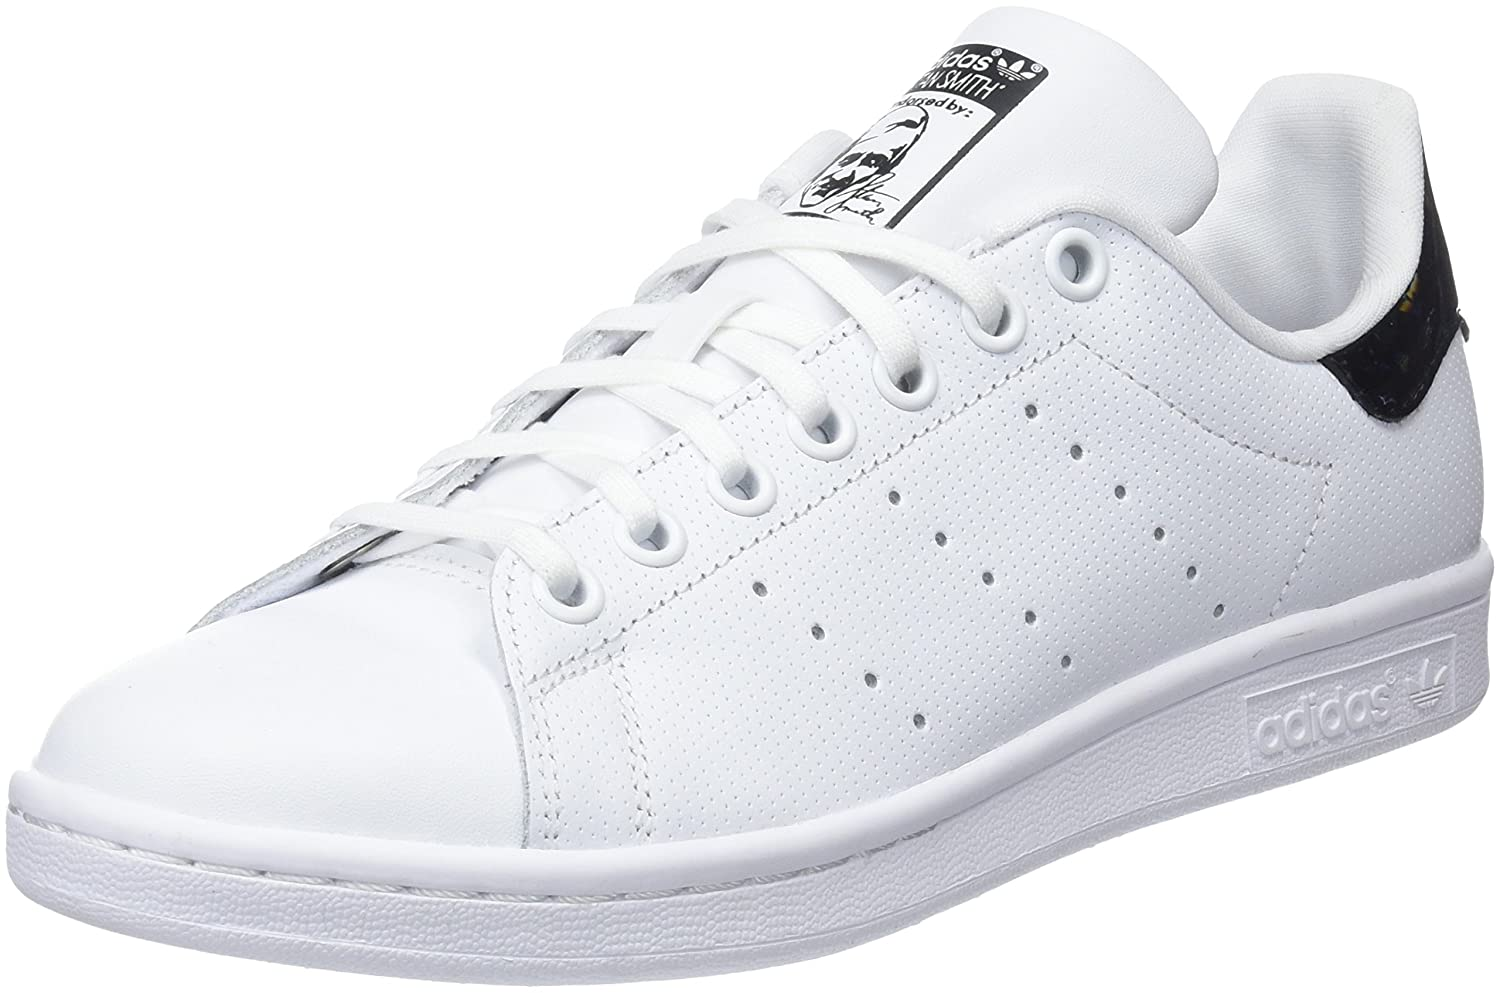 acheter populaire 6faf2 7d4c3 Amazon.com | adidas Originals Superstar J White/Black ...